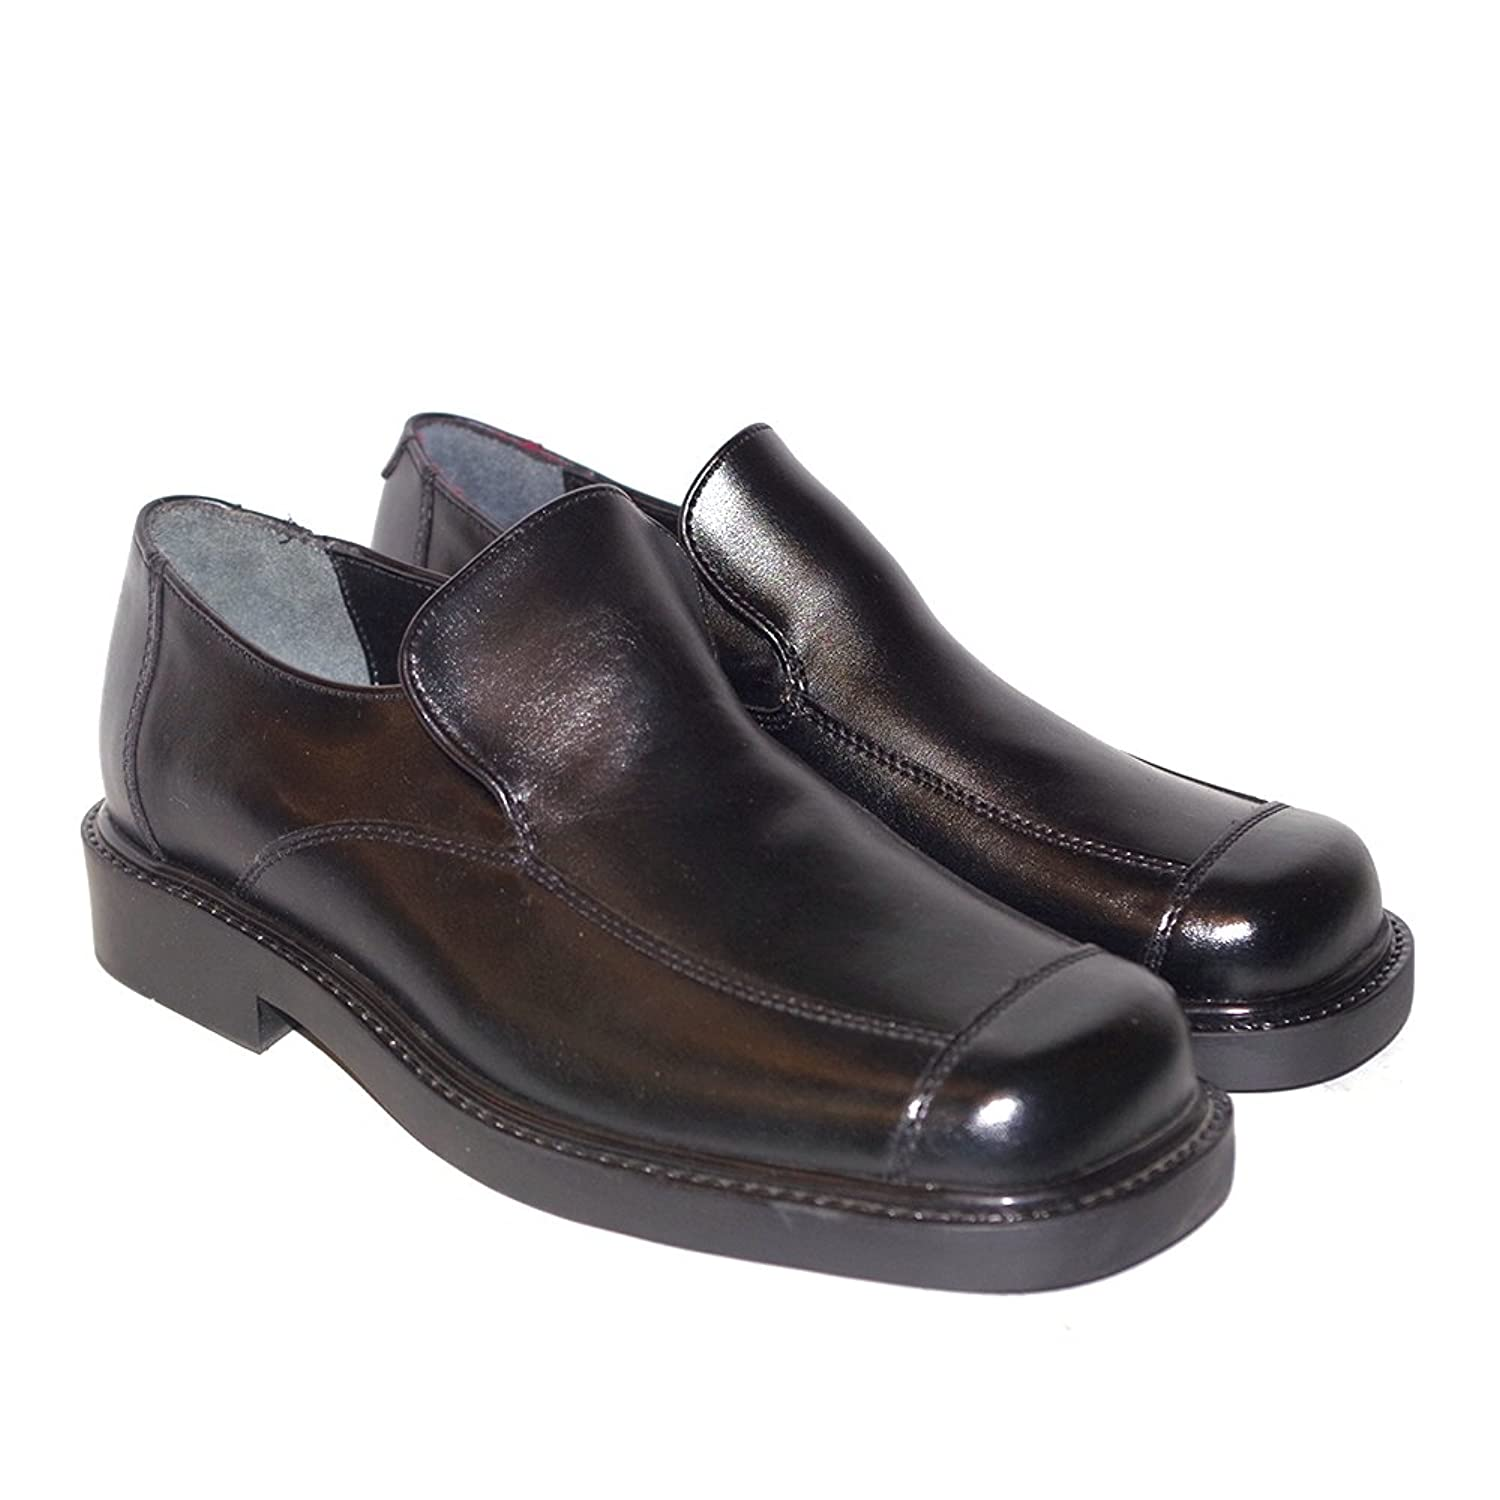 Men's Casual Fridays (Q37045811) Bruno  Color Black  Men's Square Toe Slip On Dress Shoes